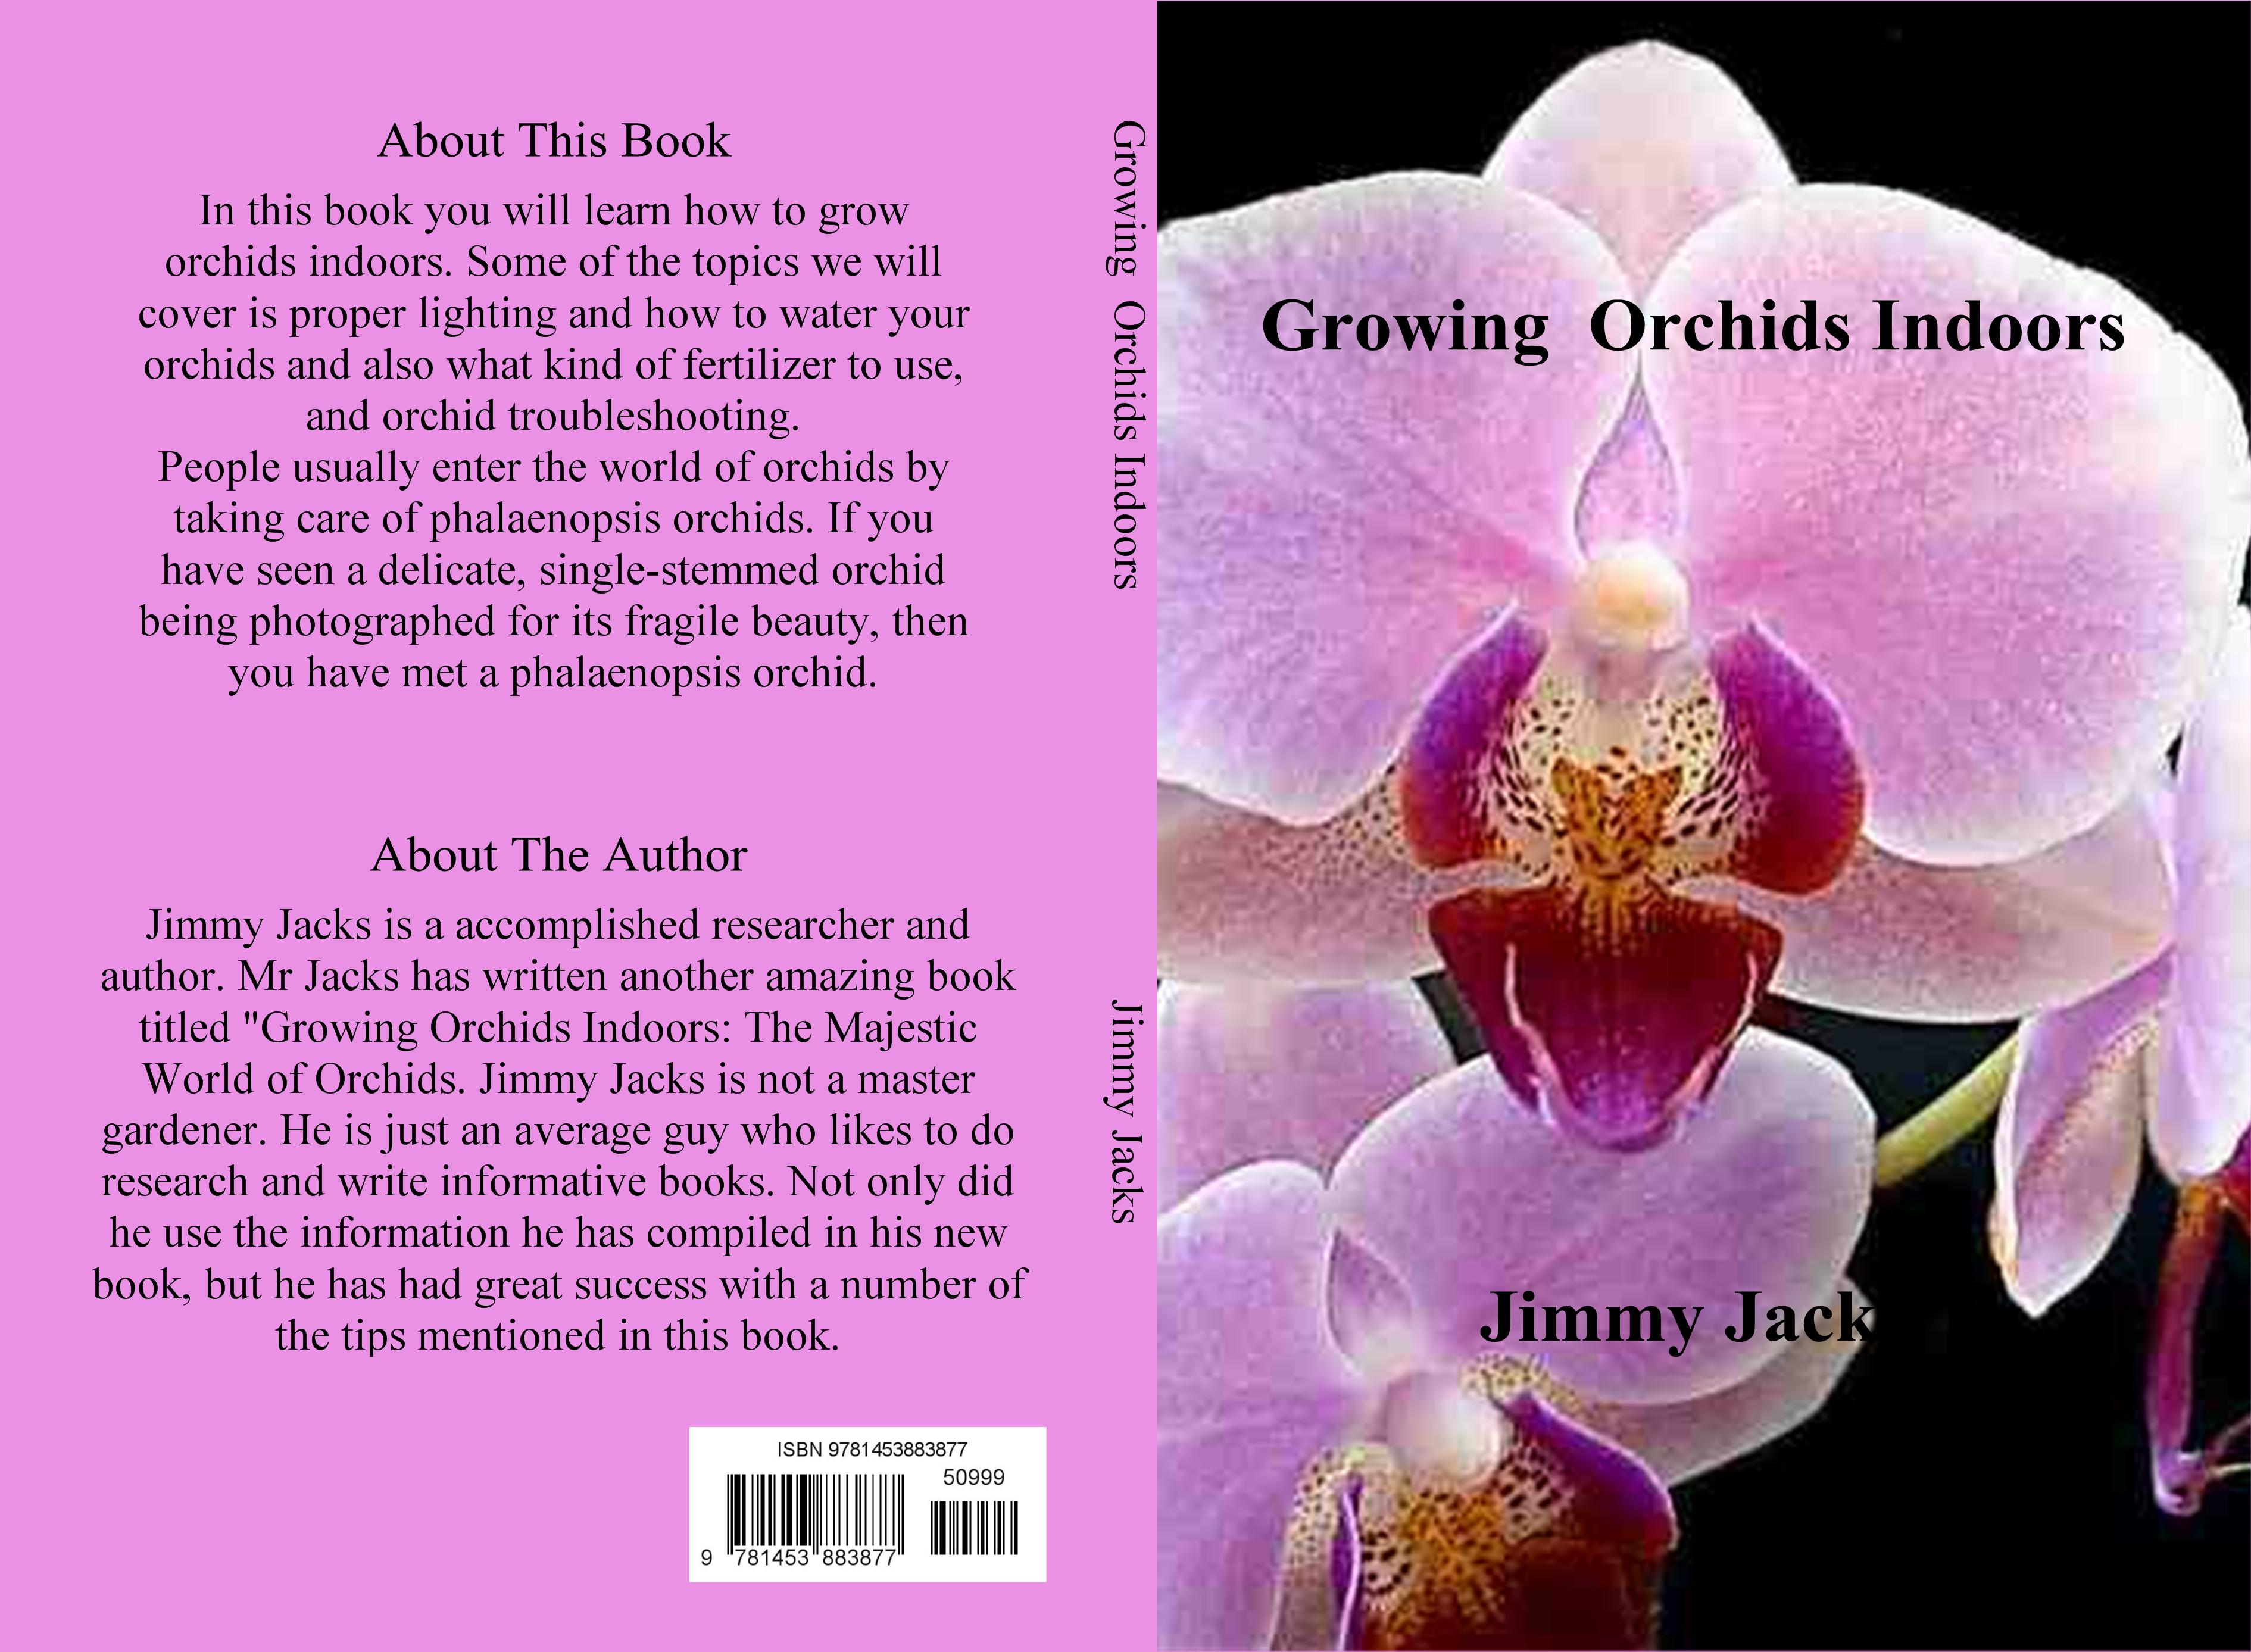 Growing Orchids Indoors cover image